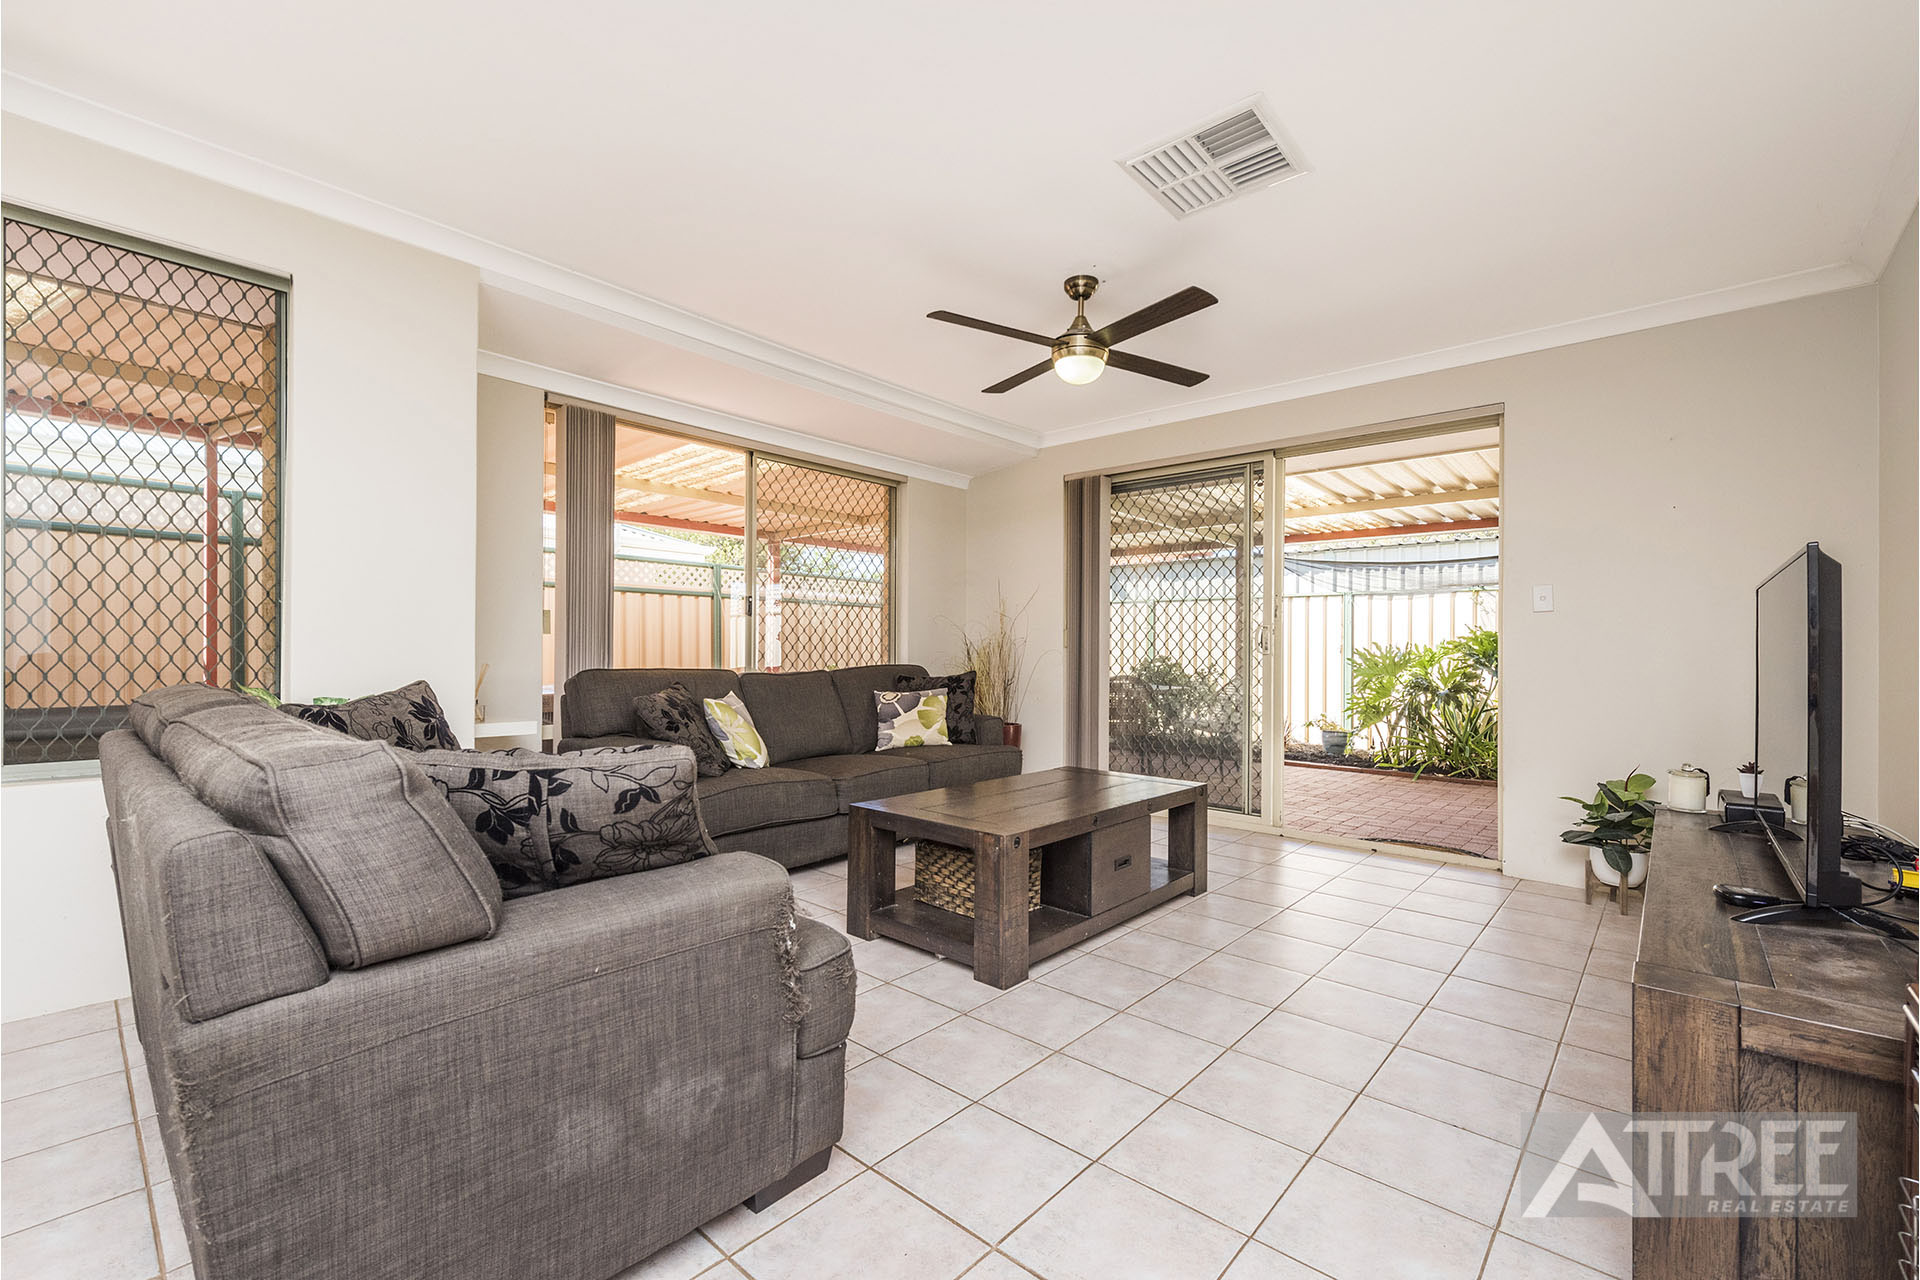 Property for sale in HUNTINGDALE, 38B Firefalls Close : Attree Real Estate